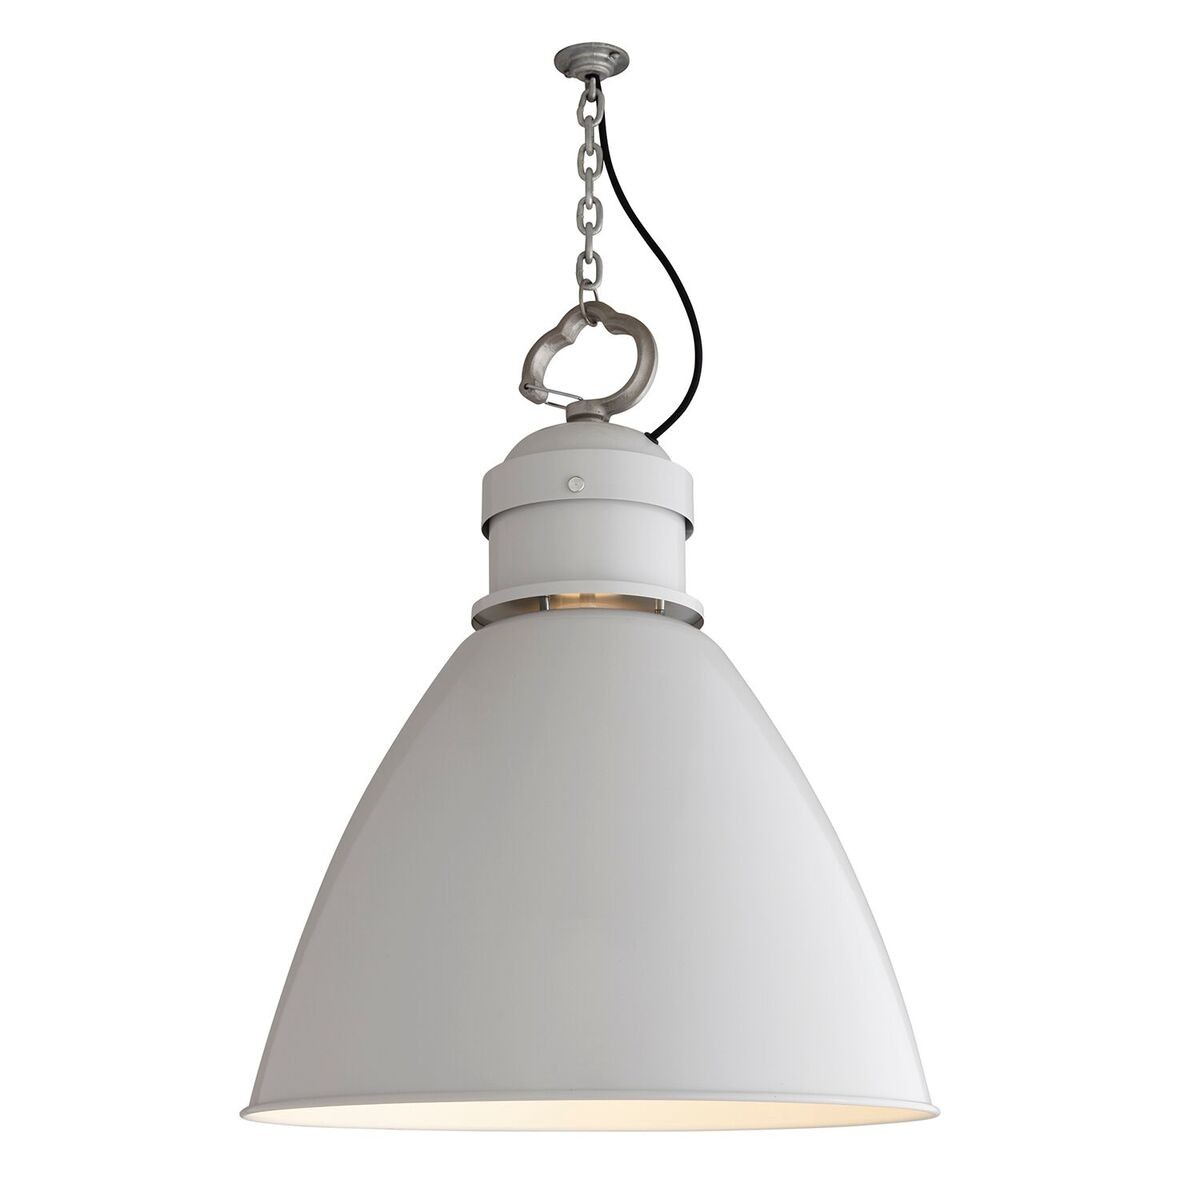 7380 Pendant Light Light Grey, Large